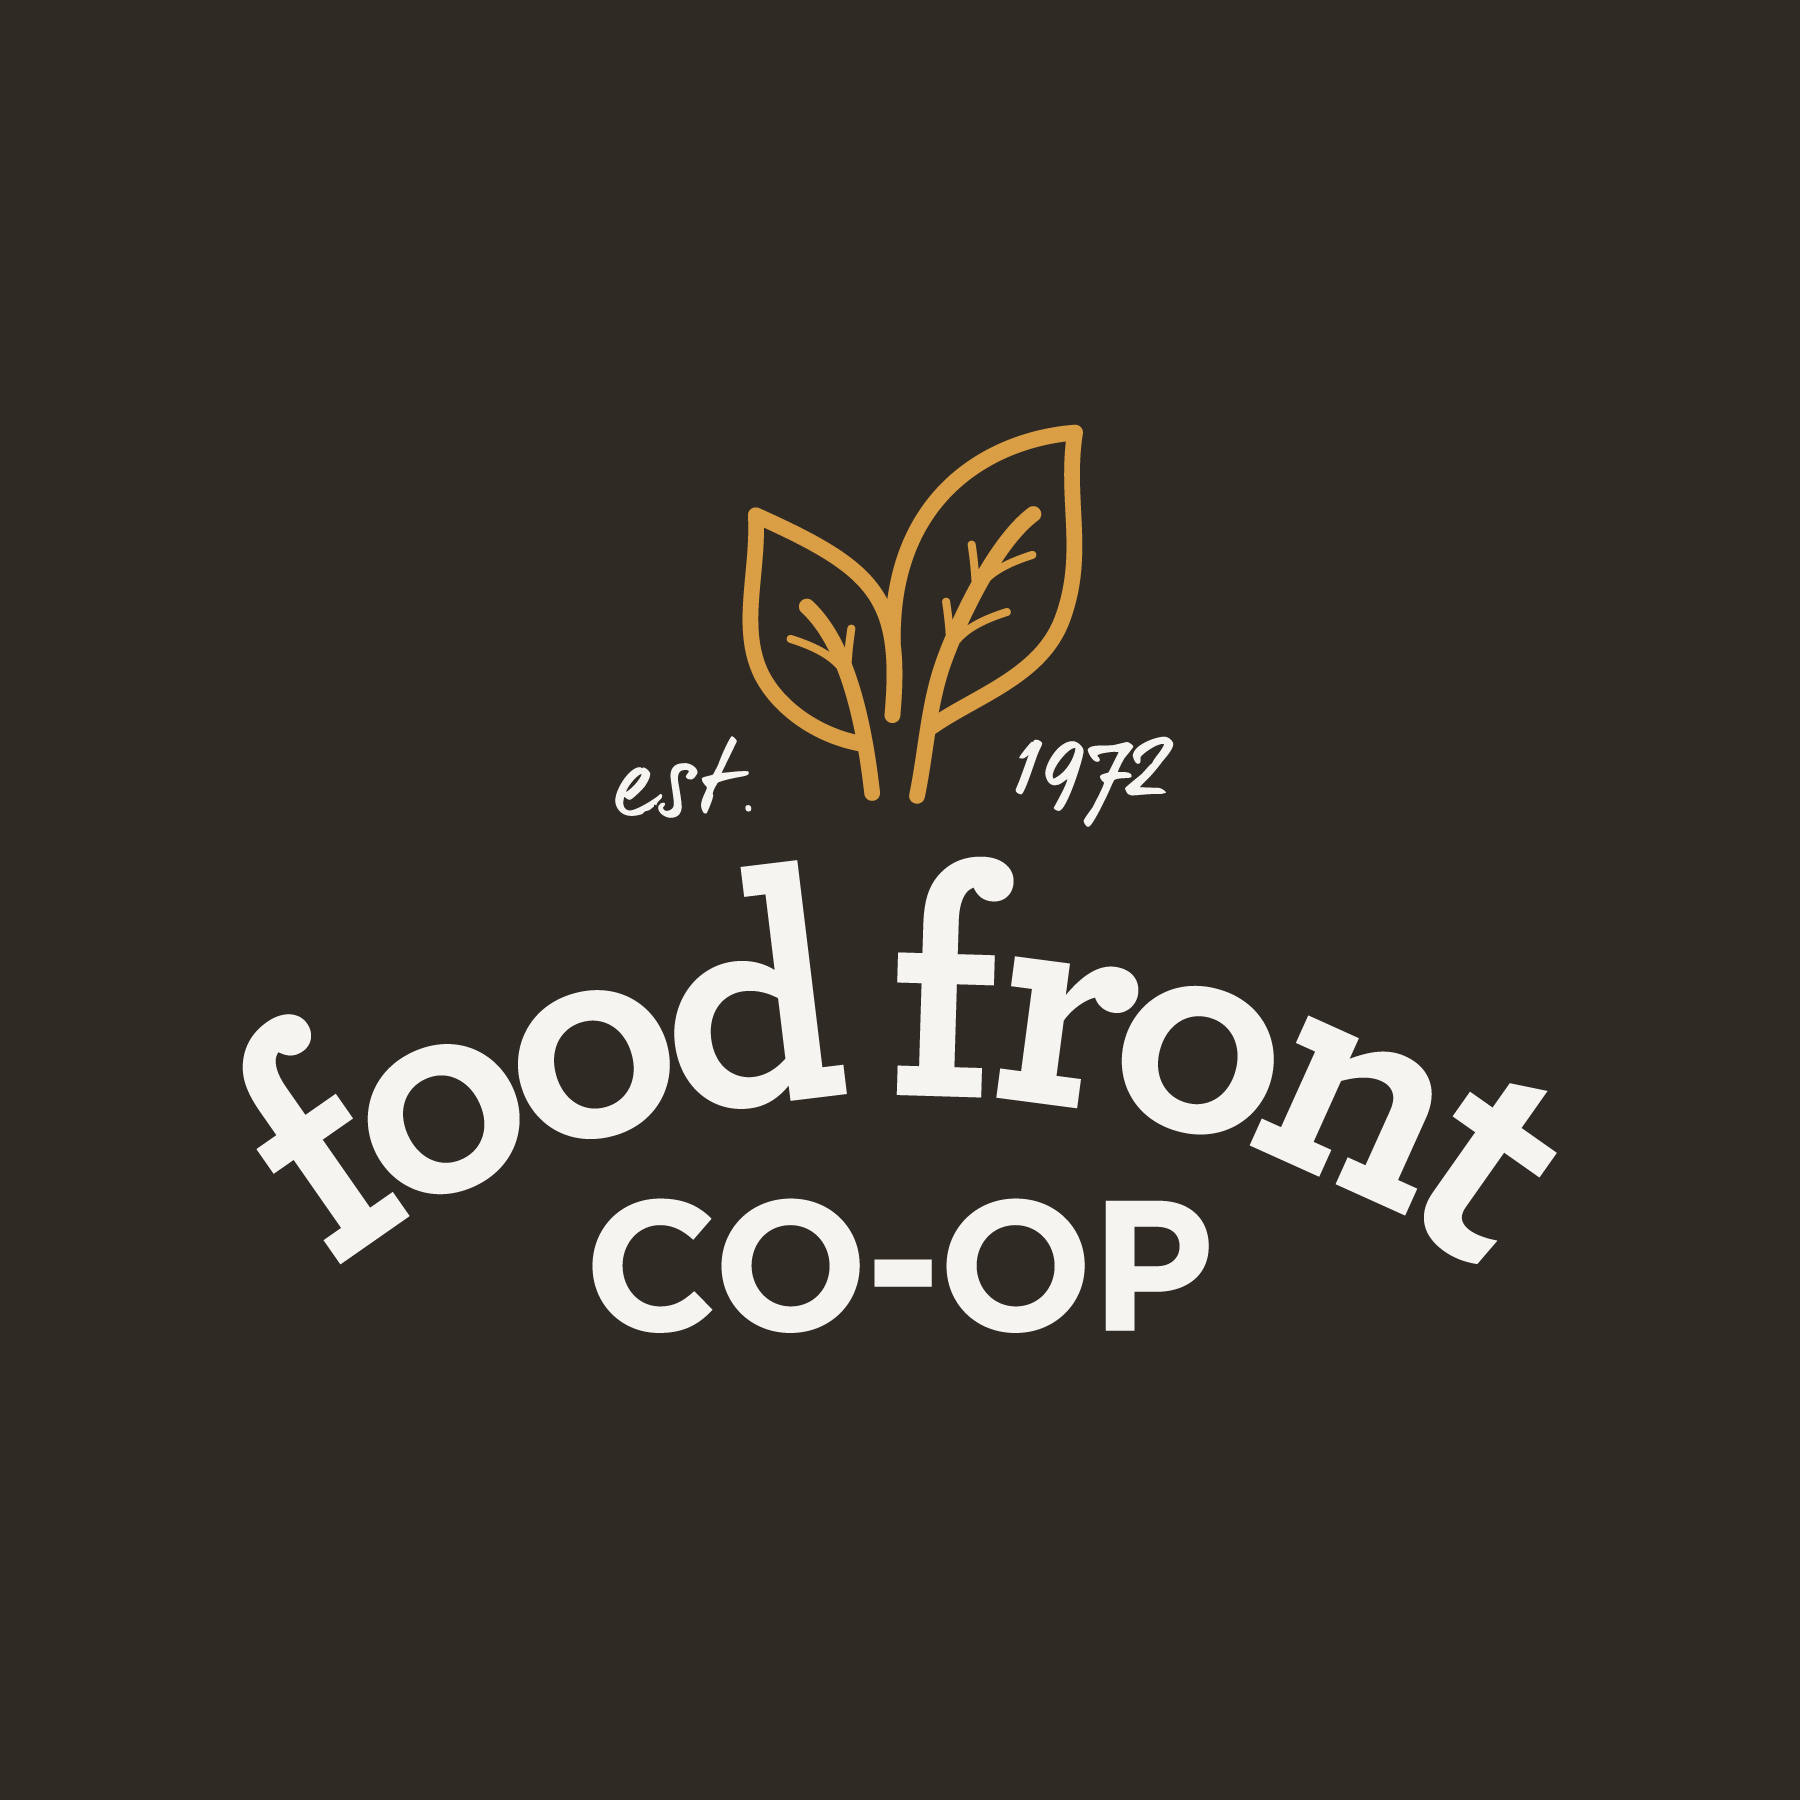 Food Front Co-Op Portland, Oregon Brand Design by Perspektiiv Design Co.